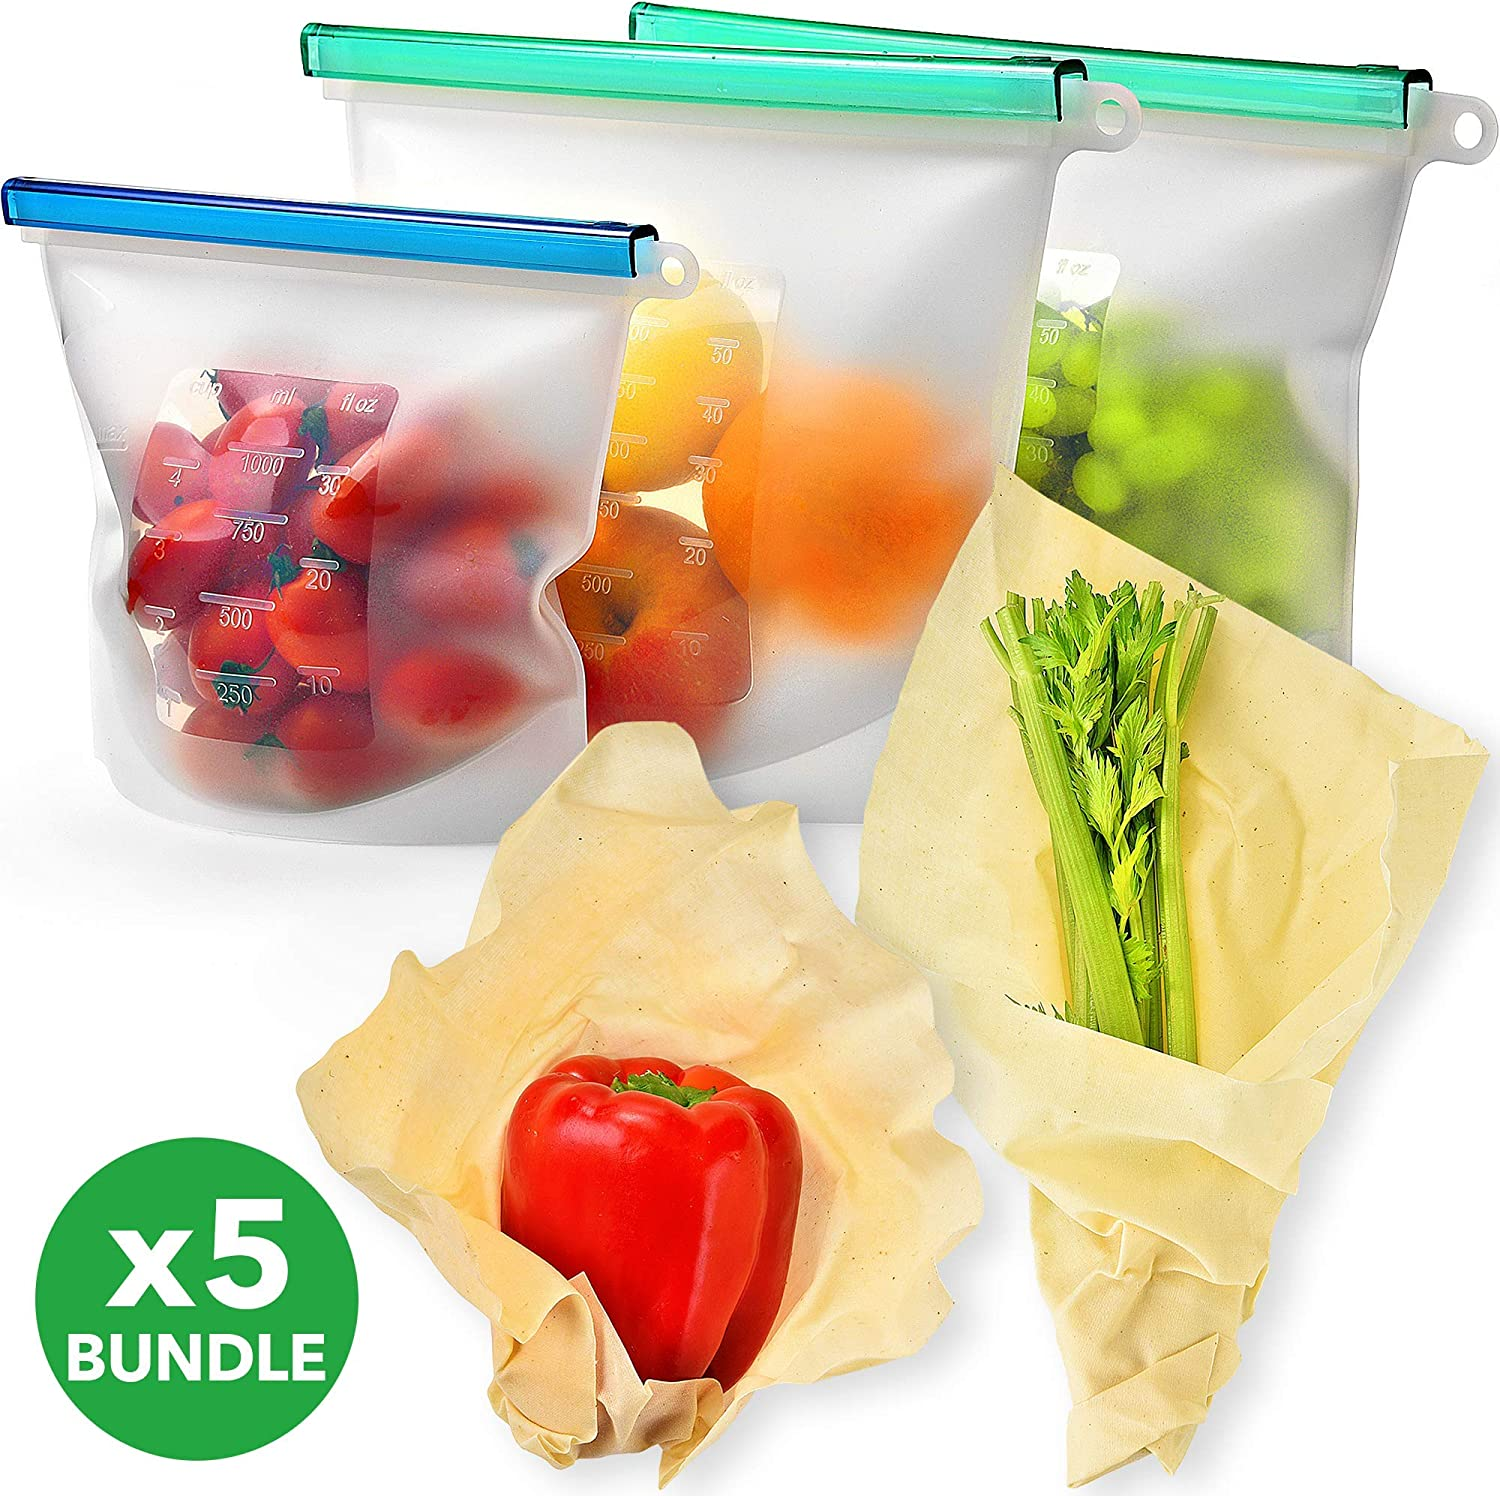 Reusable Silicone Food Storage Bag Set and Beeswax Wrap KIVA.WORLD - Bundle Includes 2 Large 50 OZ & Quart Airtight Seal Leakproof Clear Bags - 2 Extra Large Bee Wax Food Wraps Non Dyed Organic Cotton